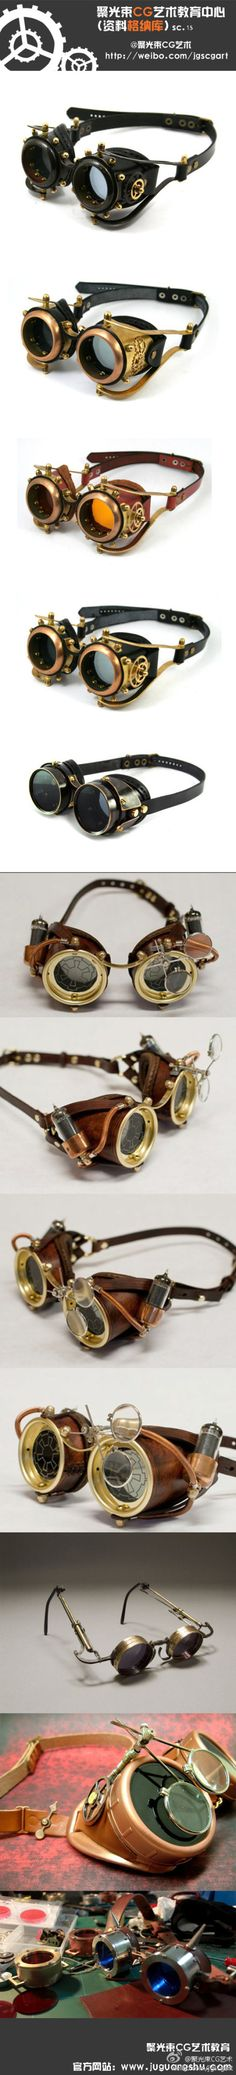 Cool #steampunk #eyewear. I'd wear these while ridding my bike #steampunkeer